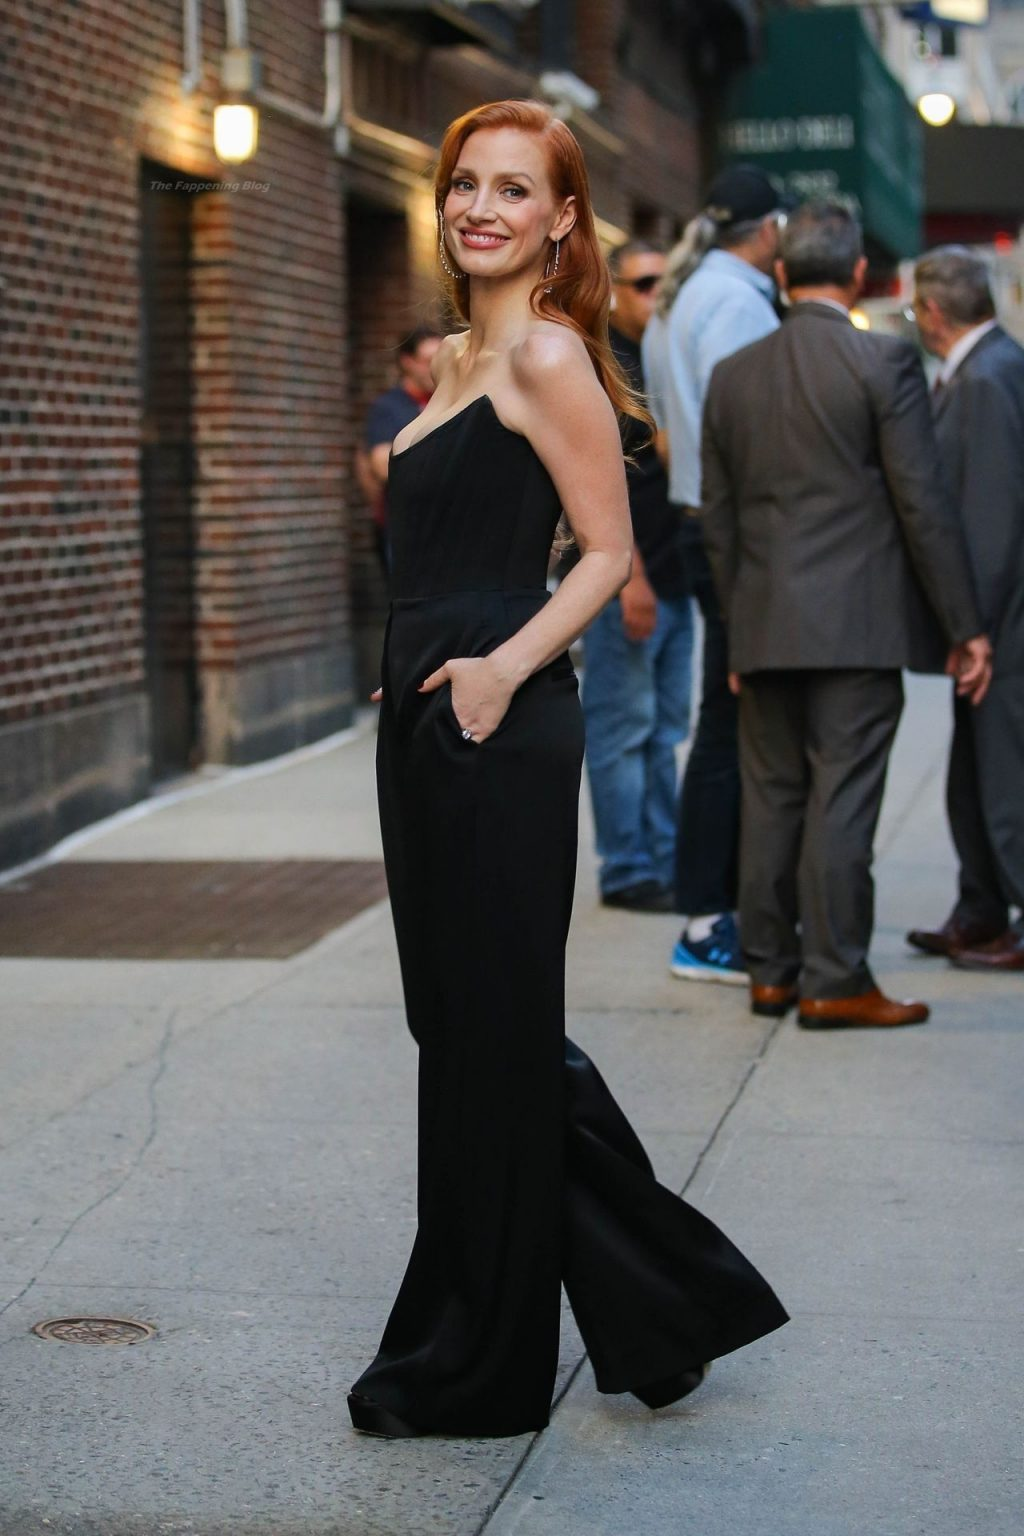 Jessica Chastain Looks Elegant in a Black Velvet Outfit Leaving The Late Show in NYC (40 Photos)